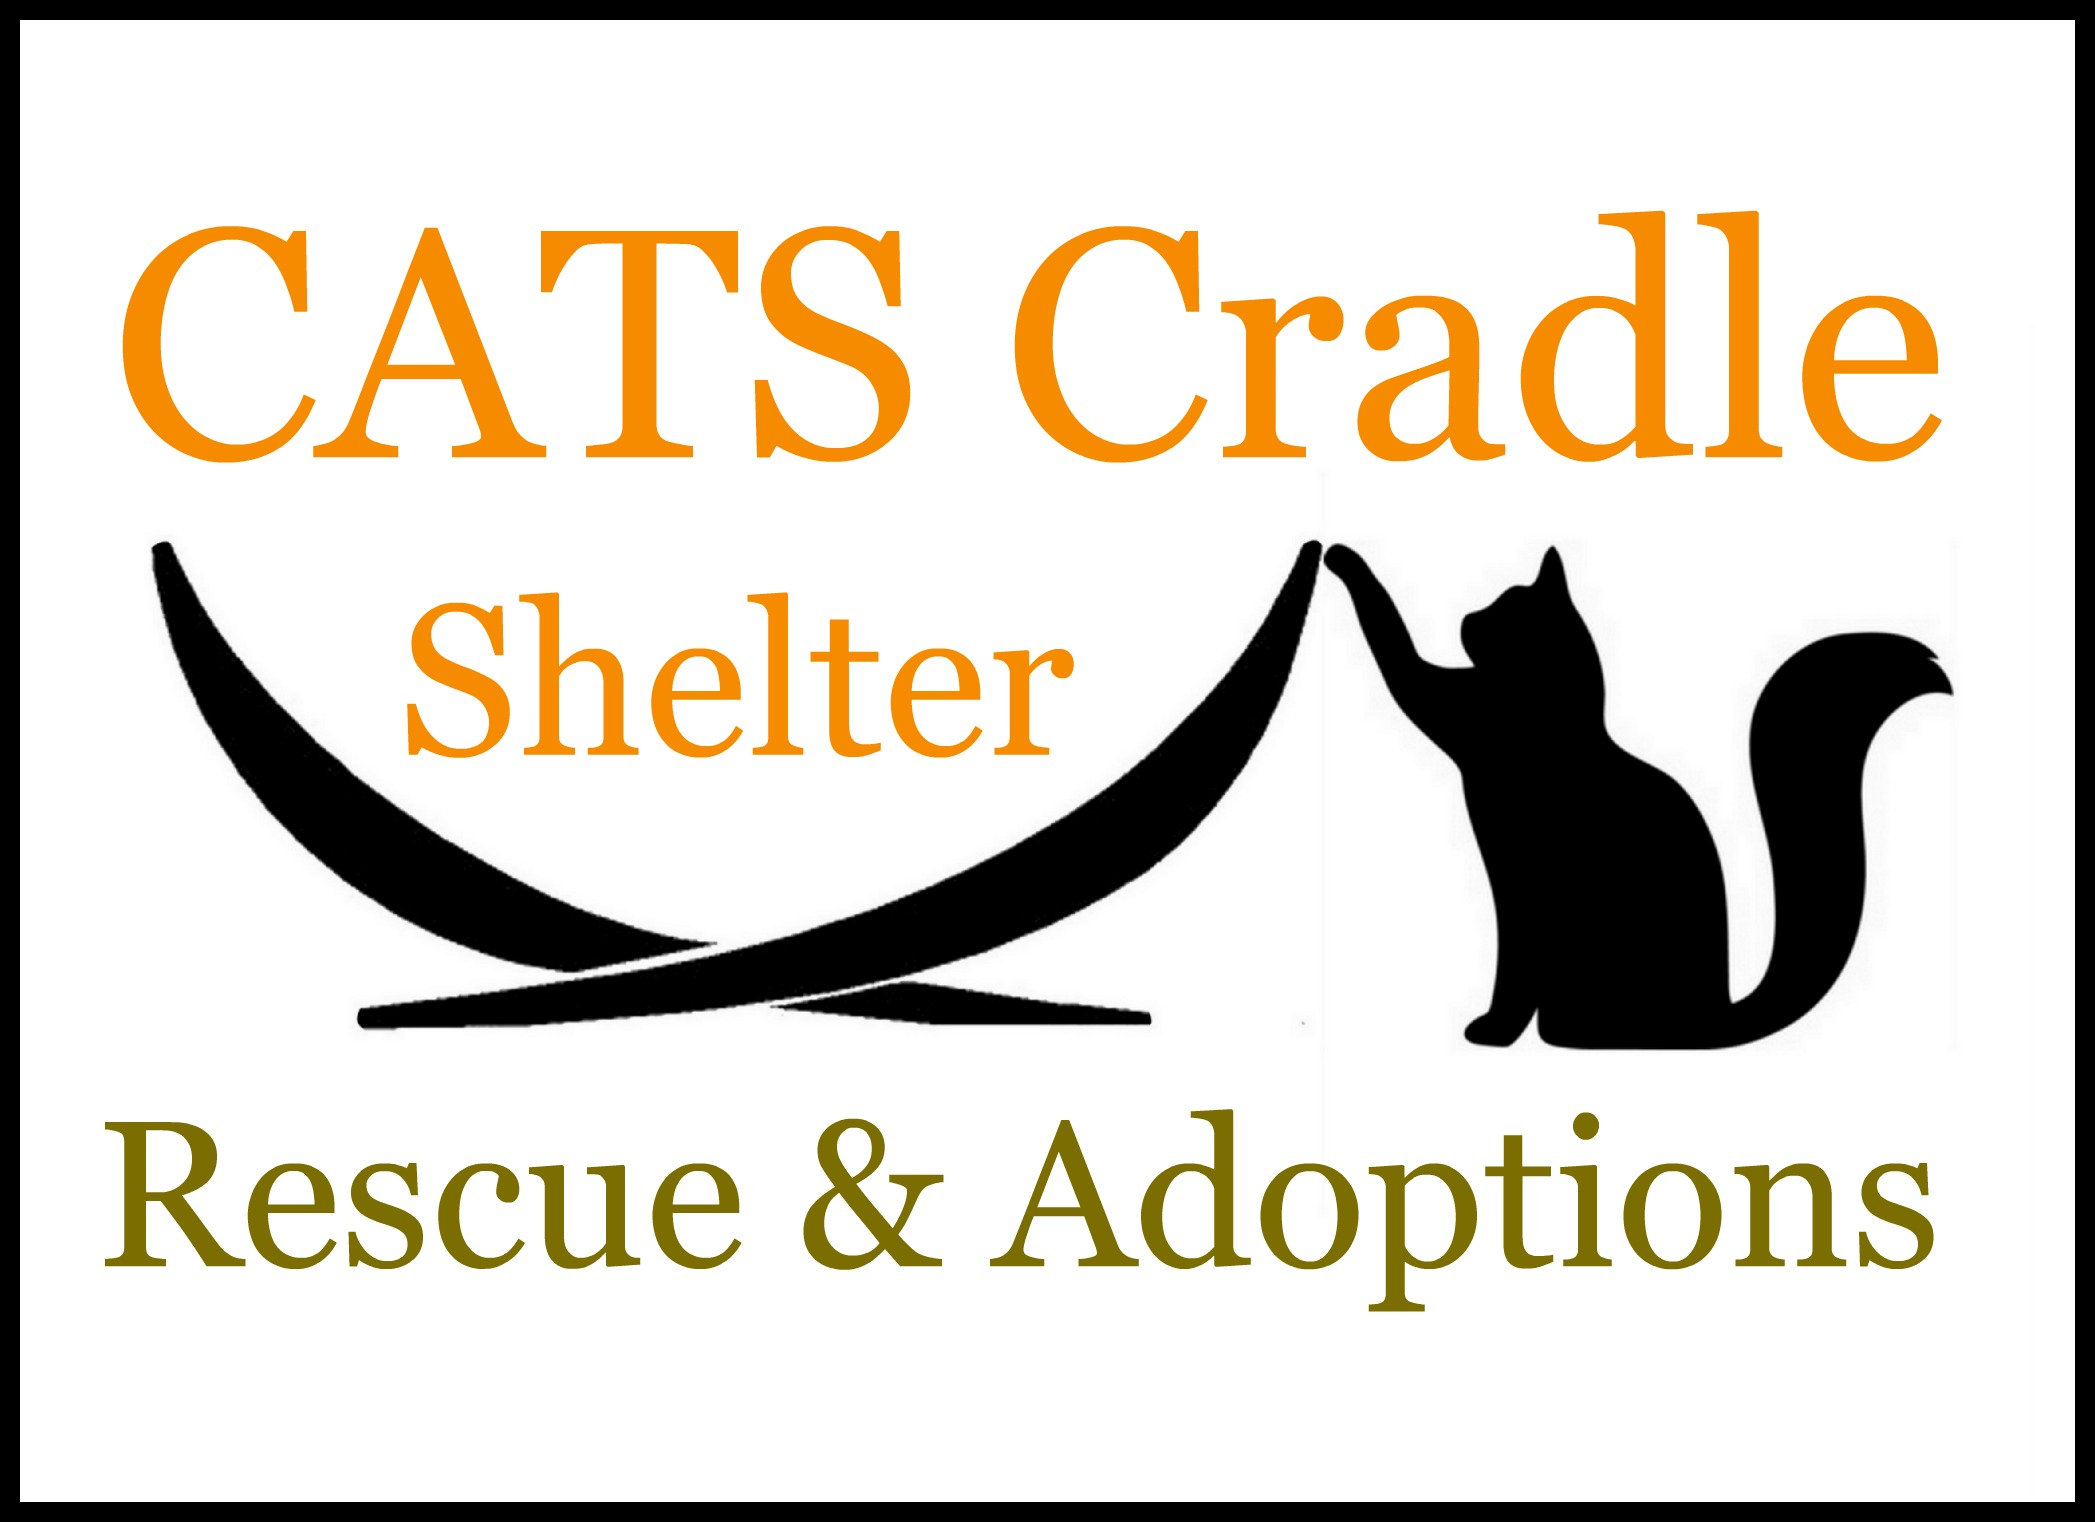 CATS Cradle Shelter, Inc